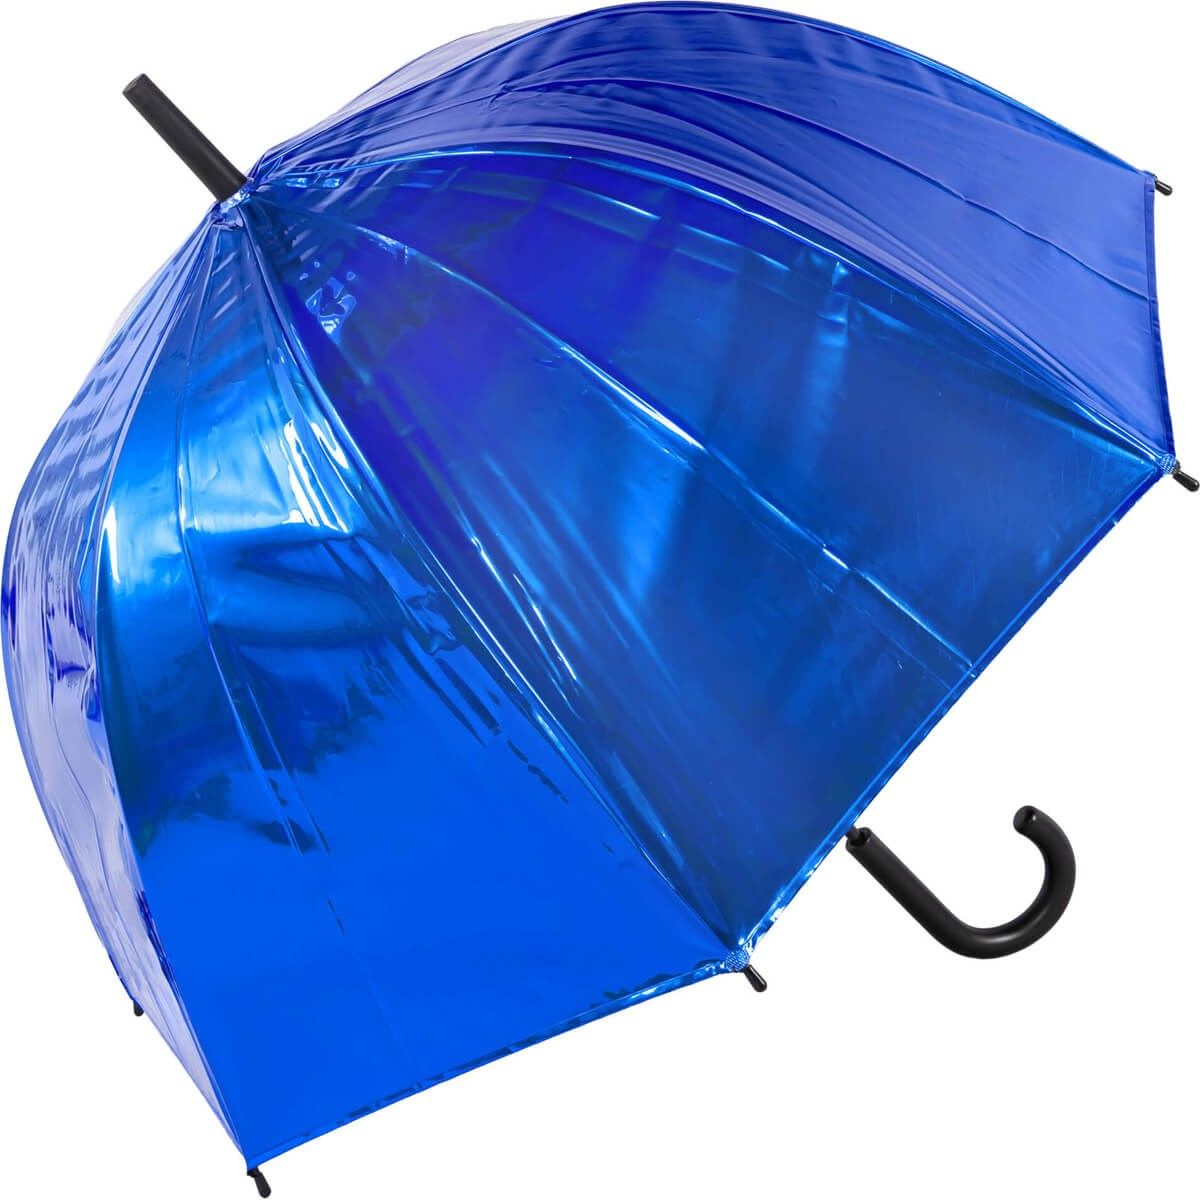 Auto Open Metallic Blue Bubble Dome Umbrella (18019)